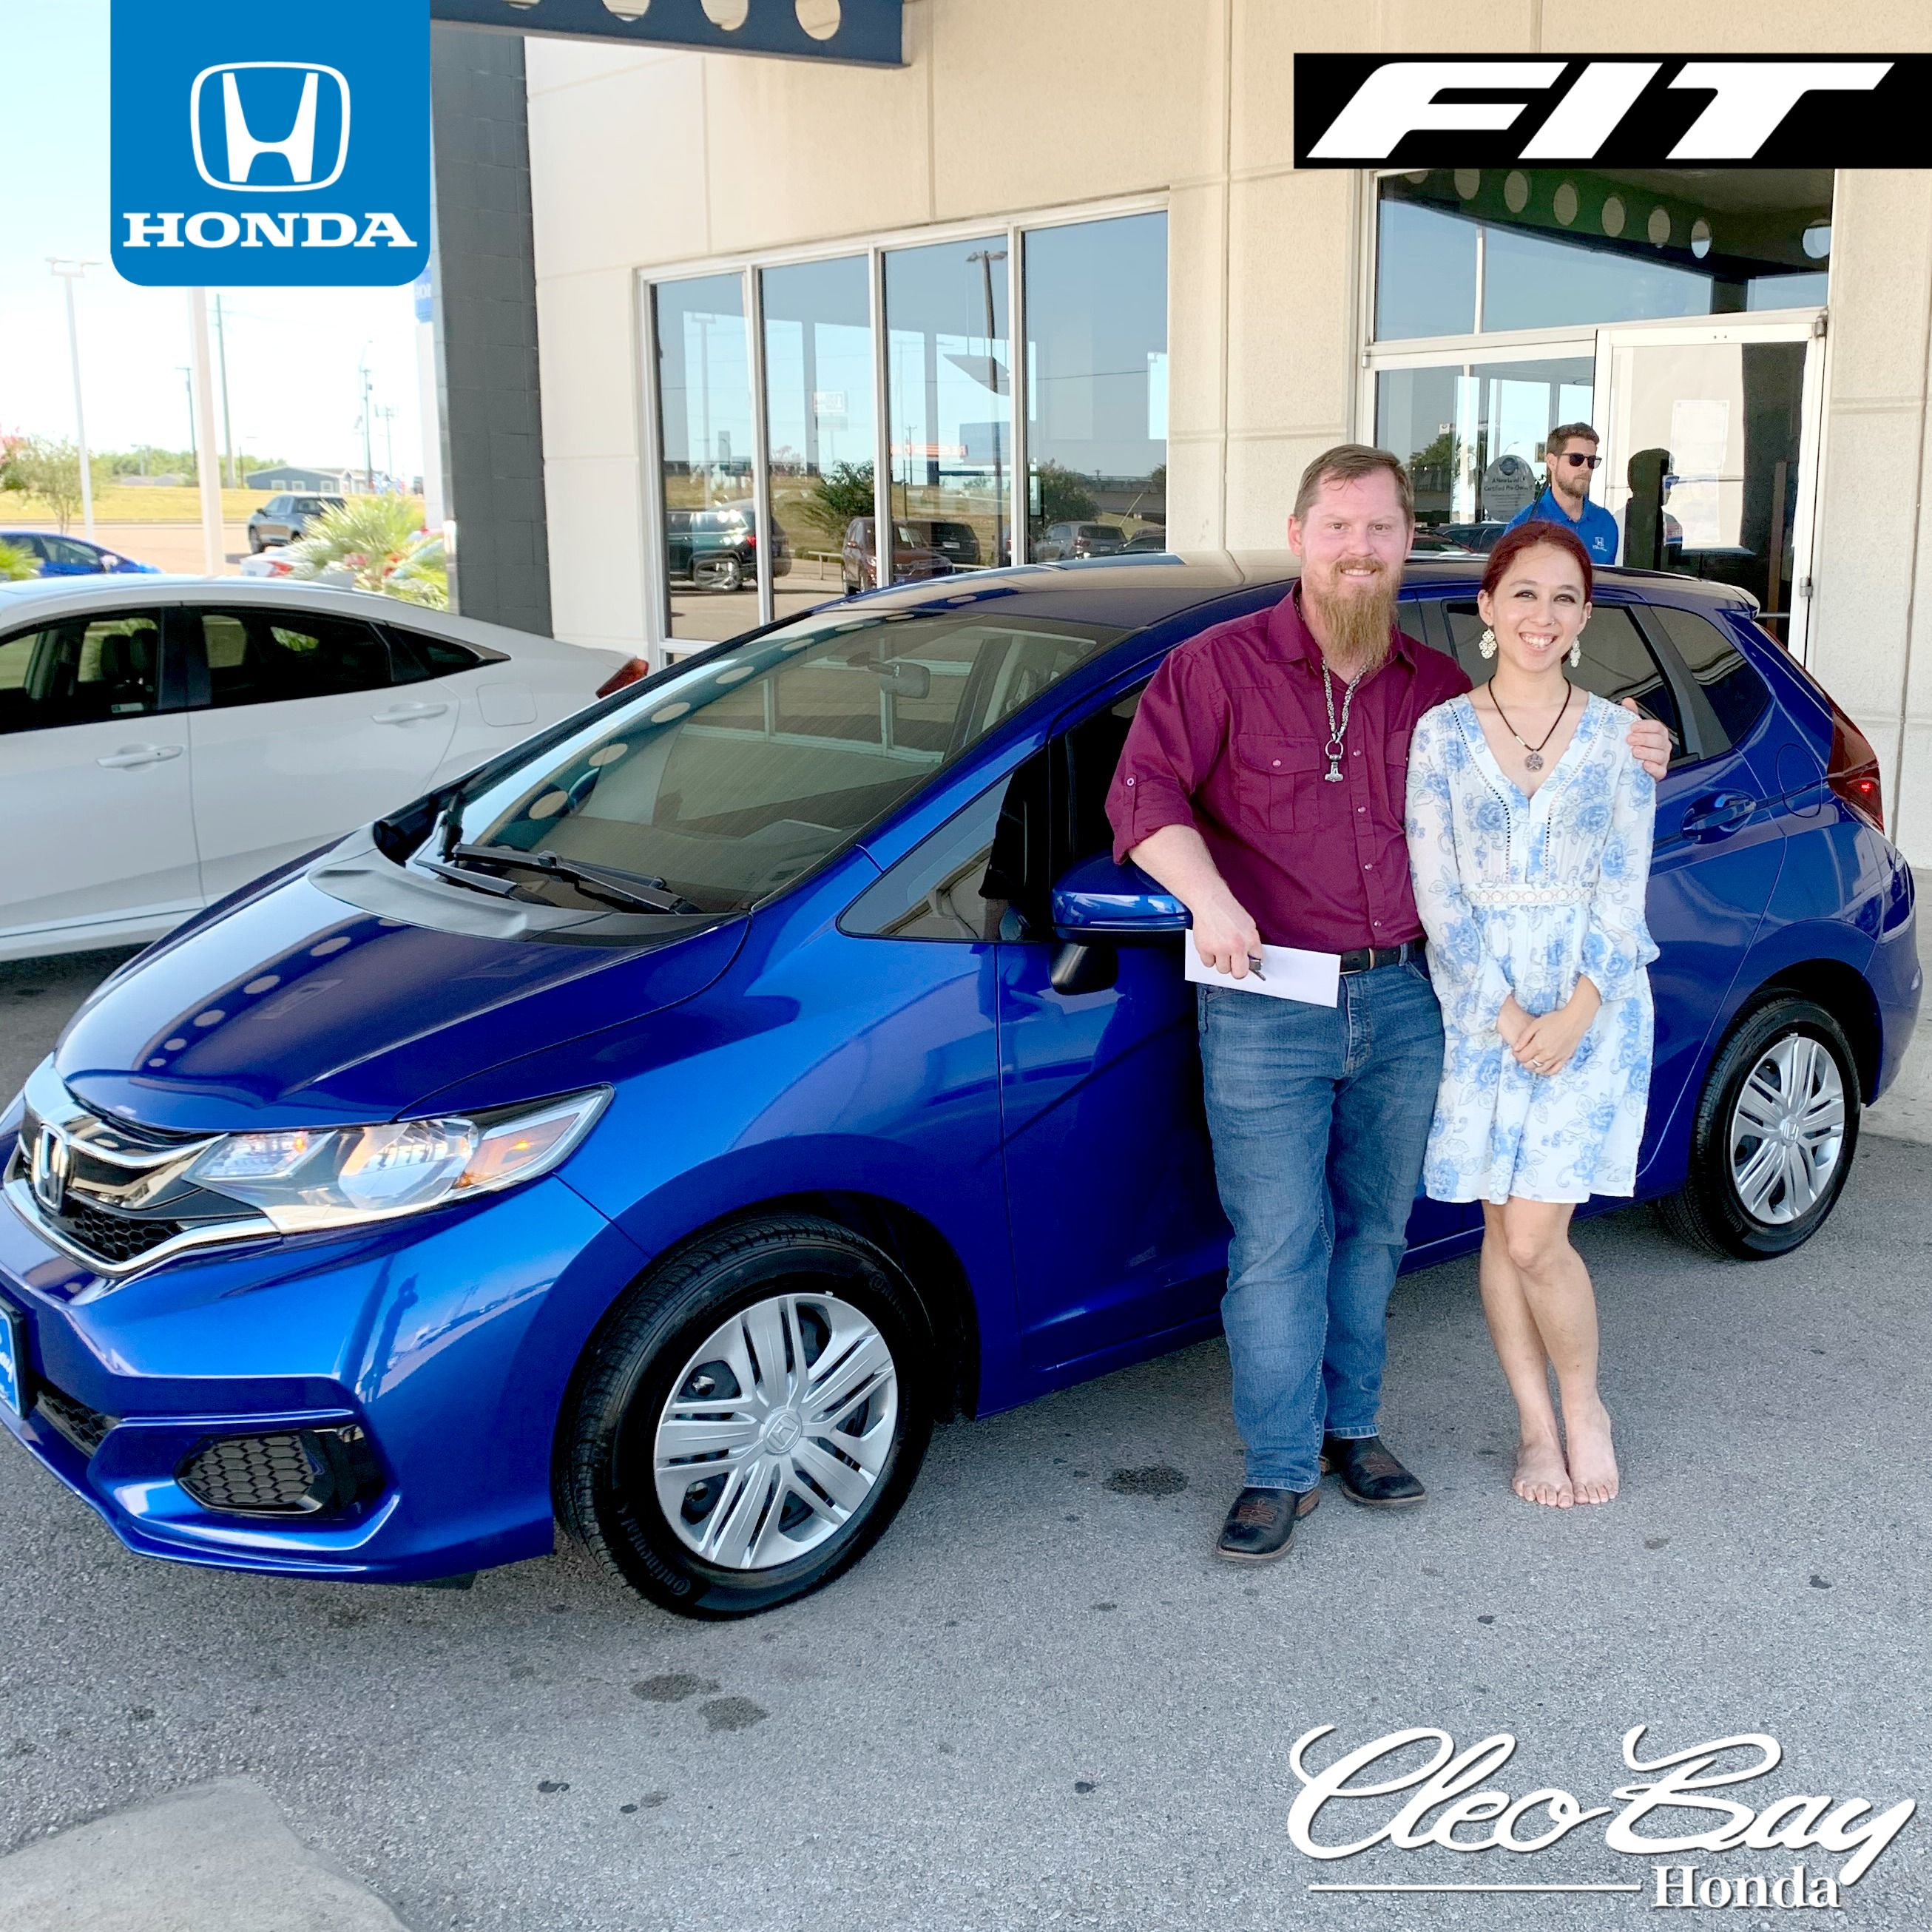 Congratulations Velada S On Your Recent Purchase Of A 2020 Honda Fit Lx Click The Pic To Check Out Our Complete Inventory Of In 2020 Honda Fit Honda Fit Lx New Honda